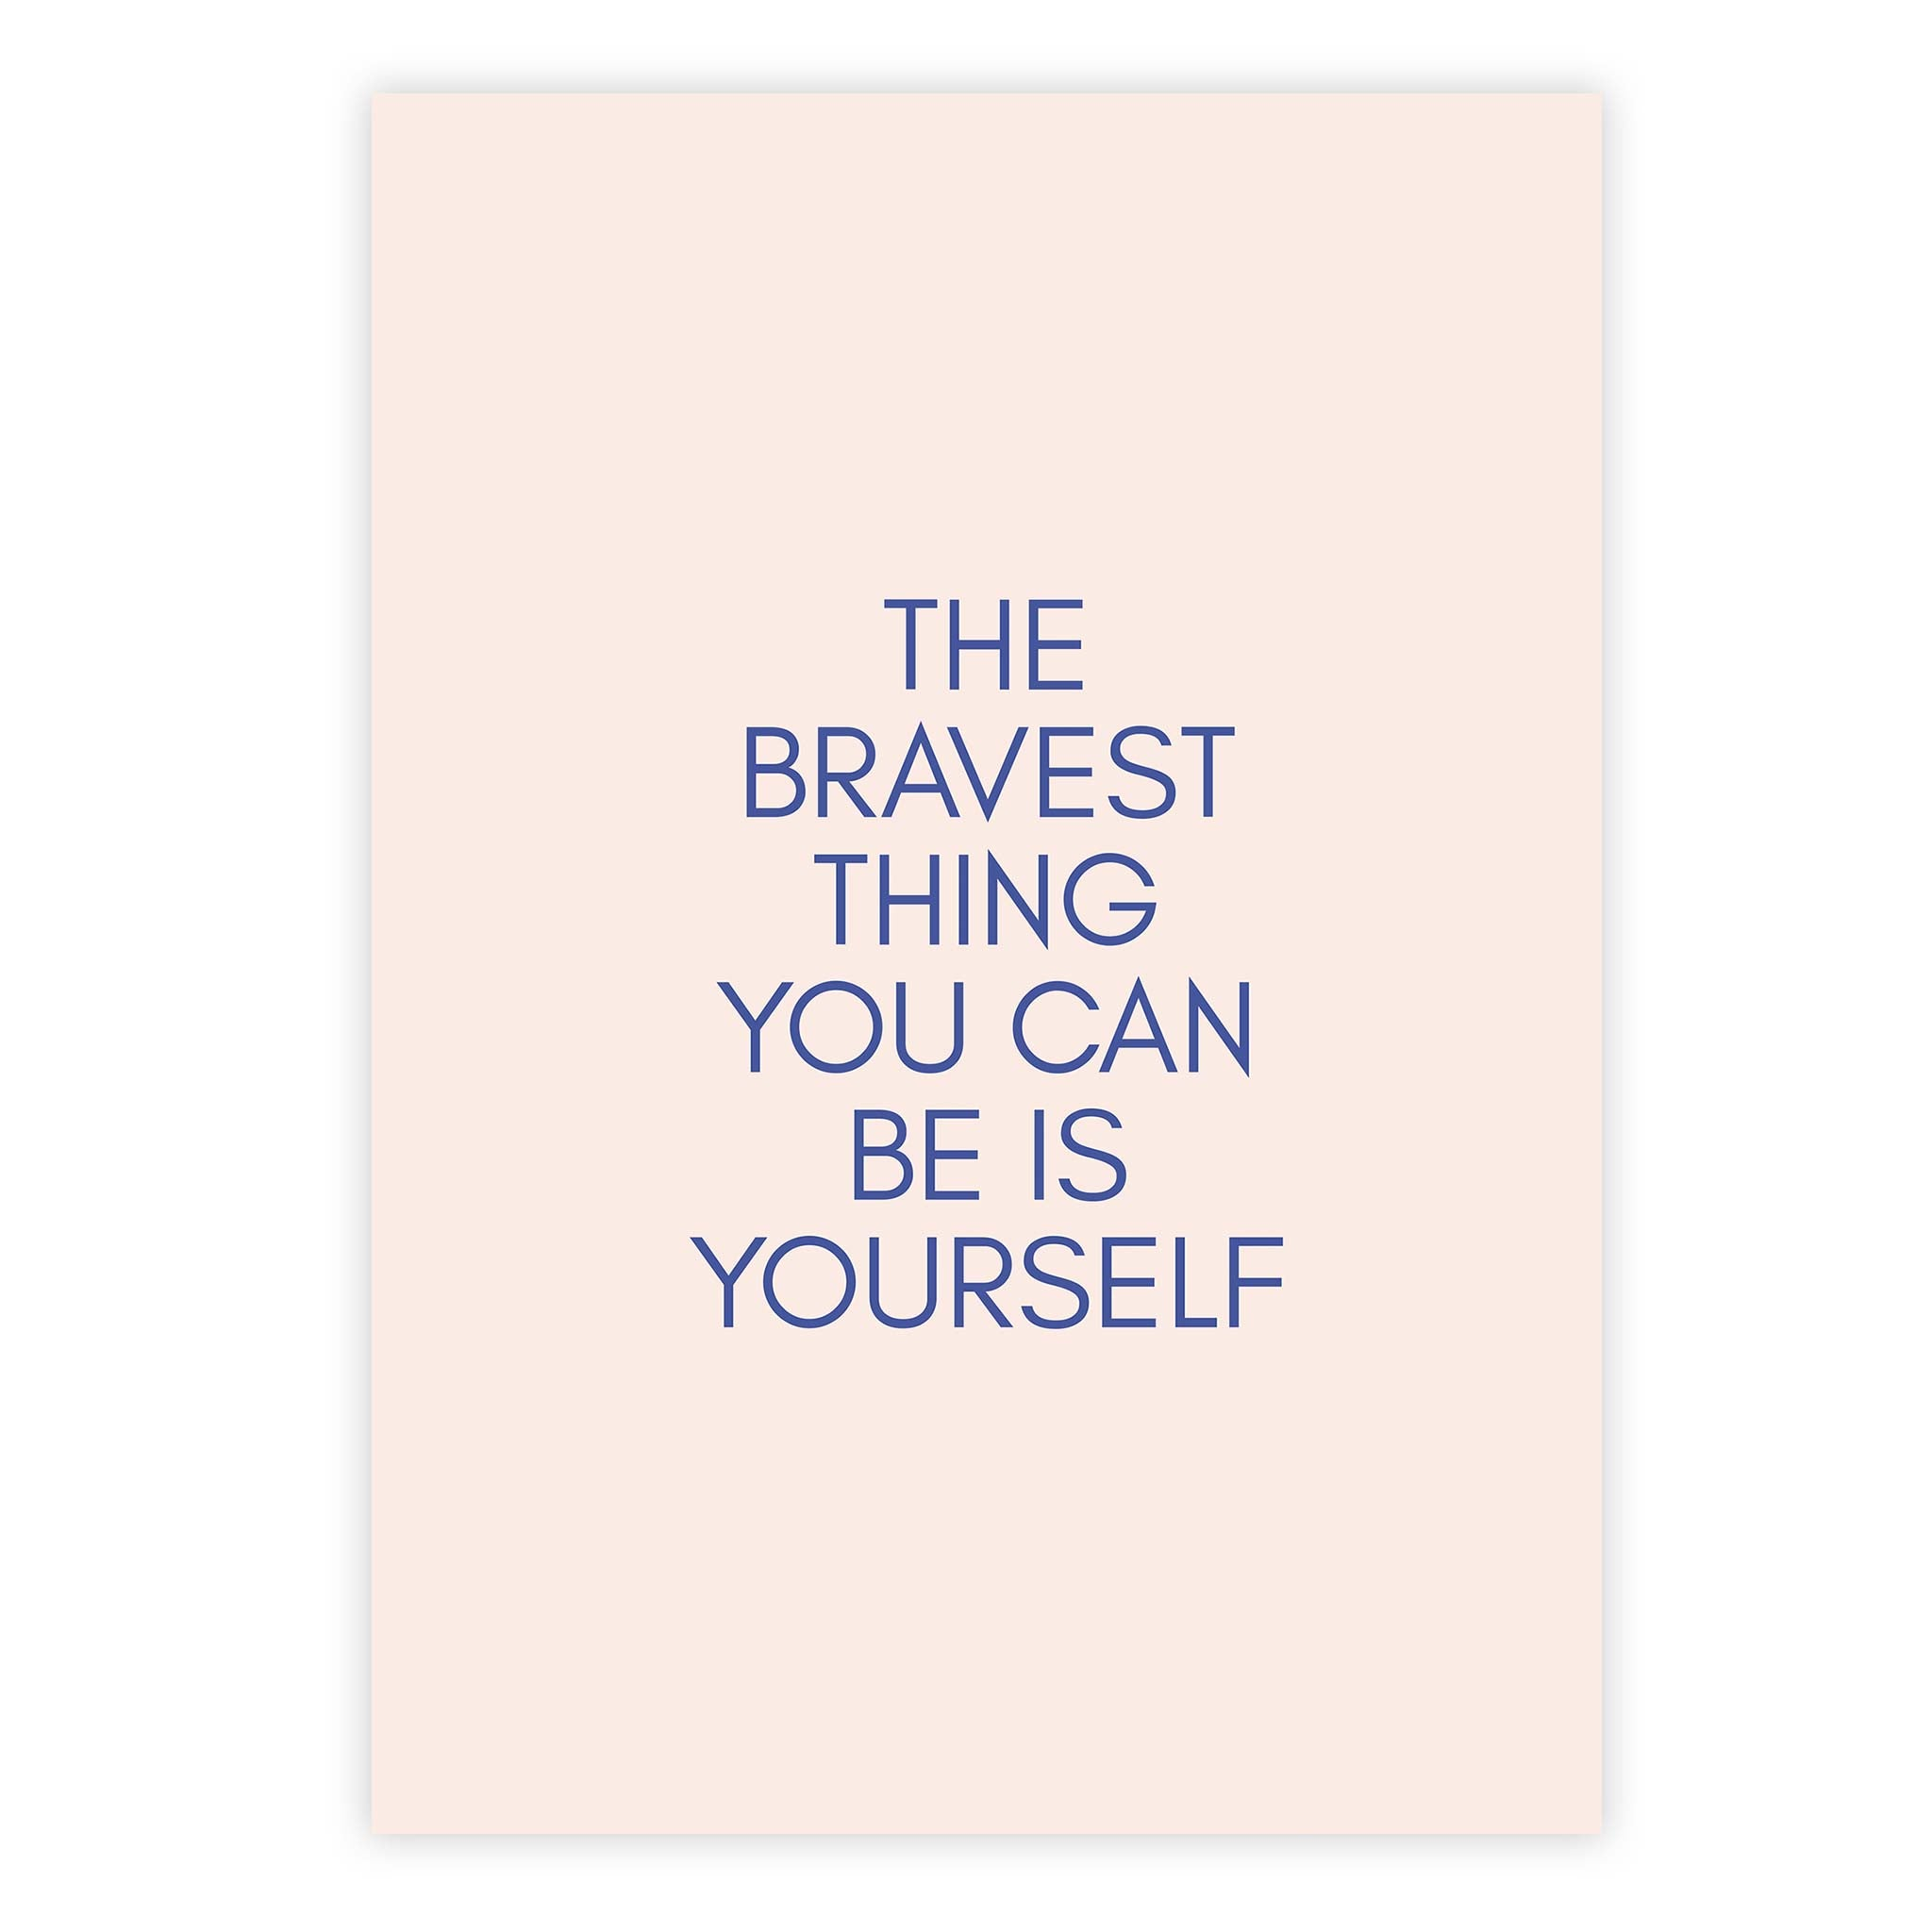 The bravest thing you can be is yourself